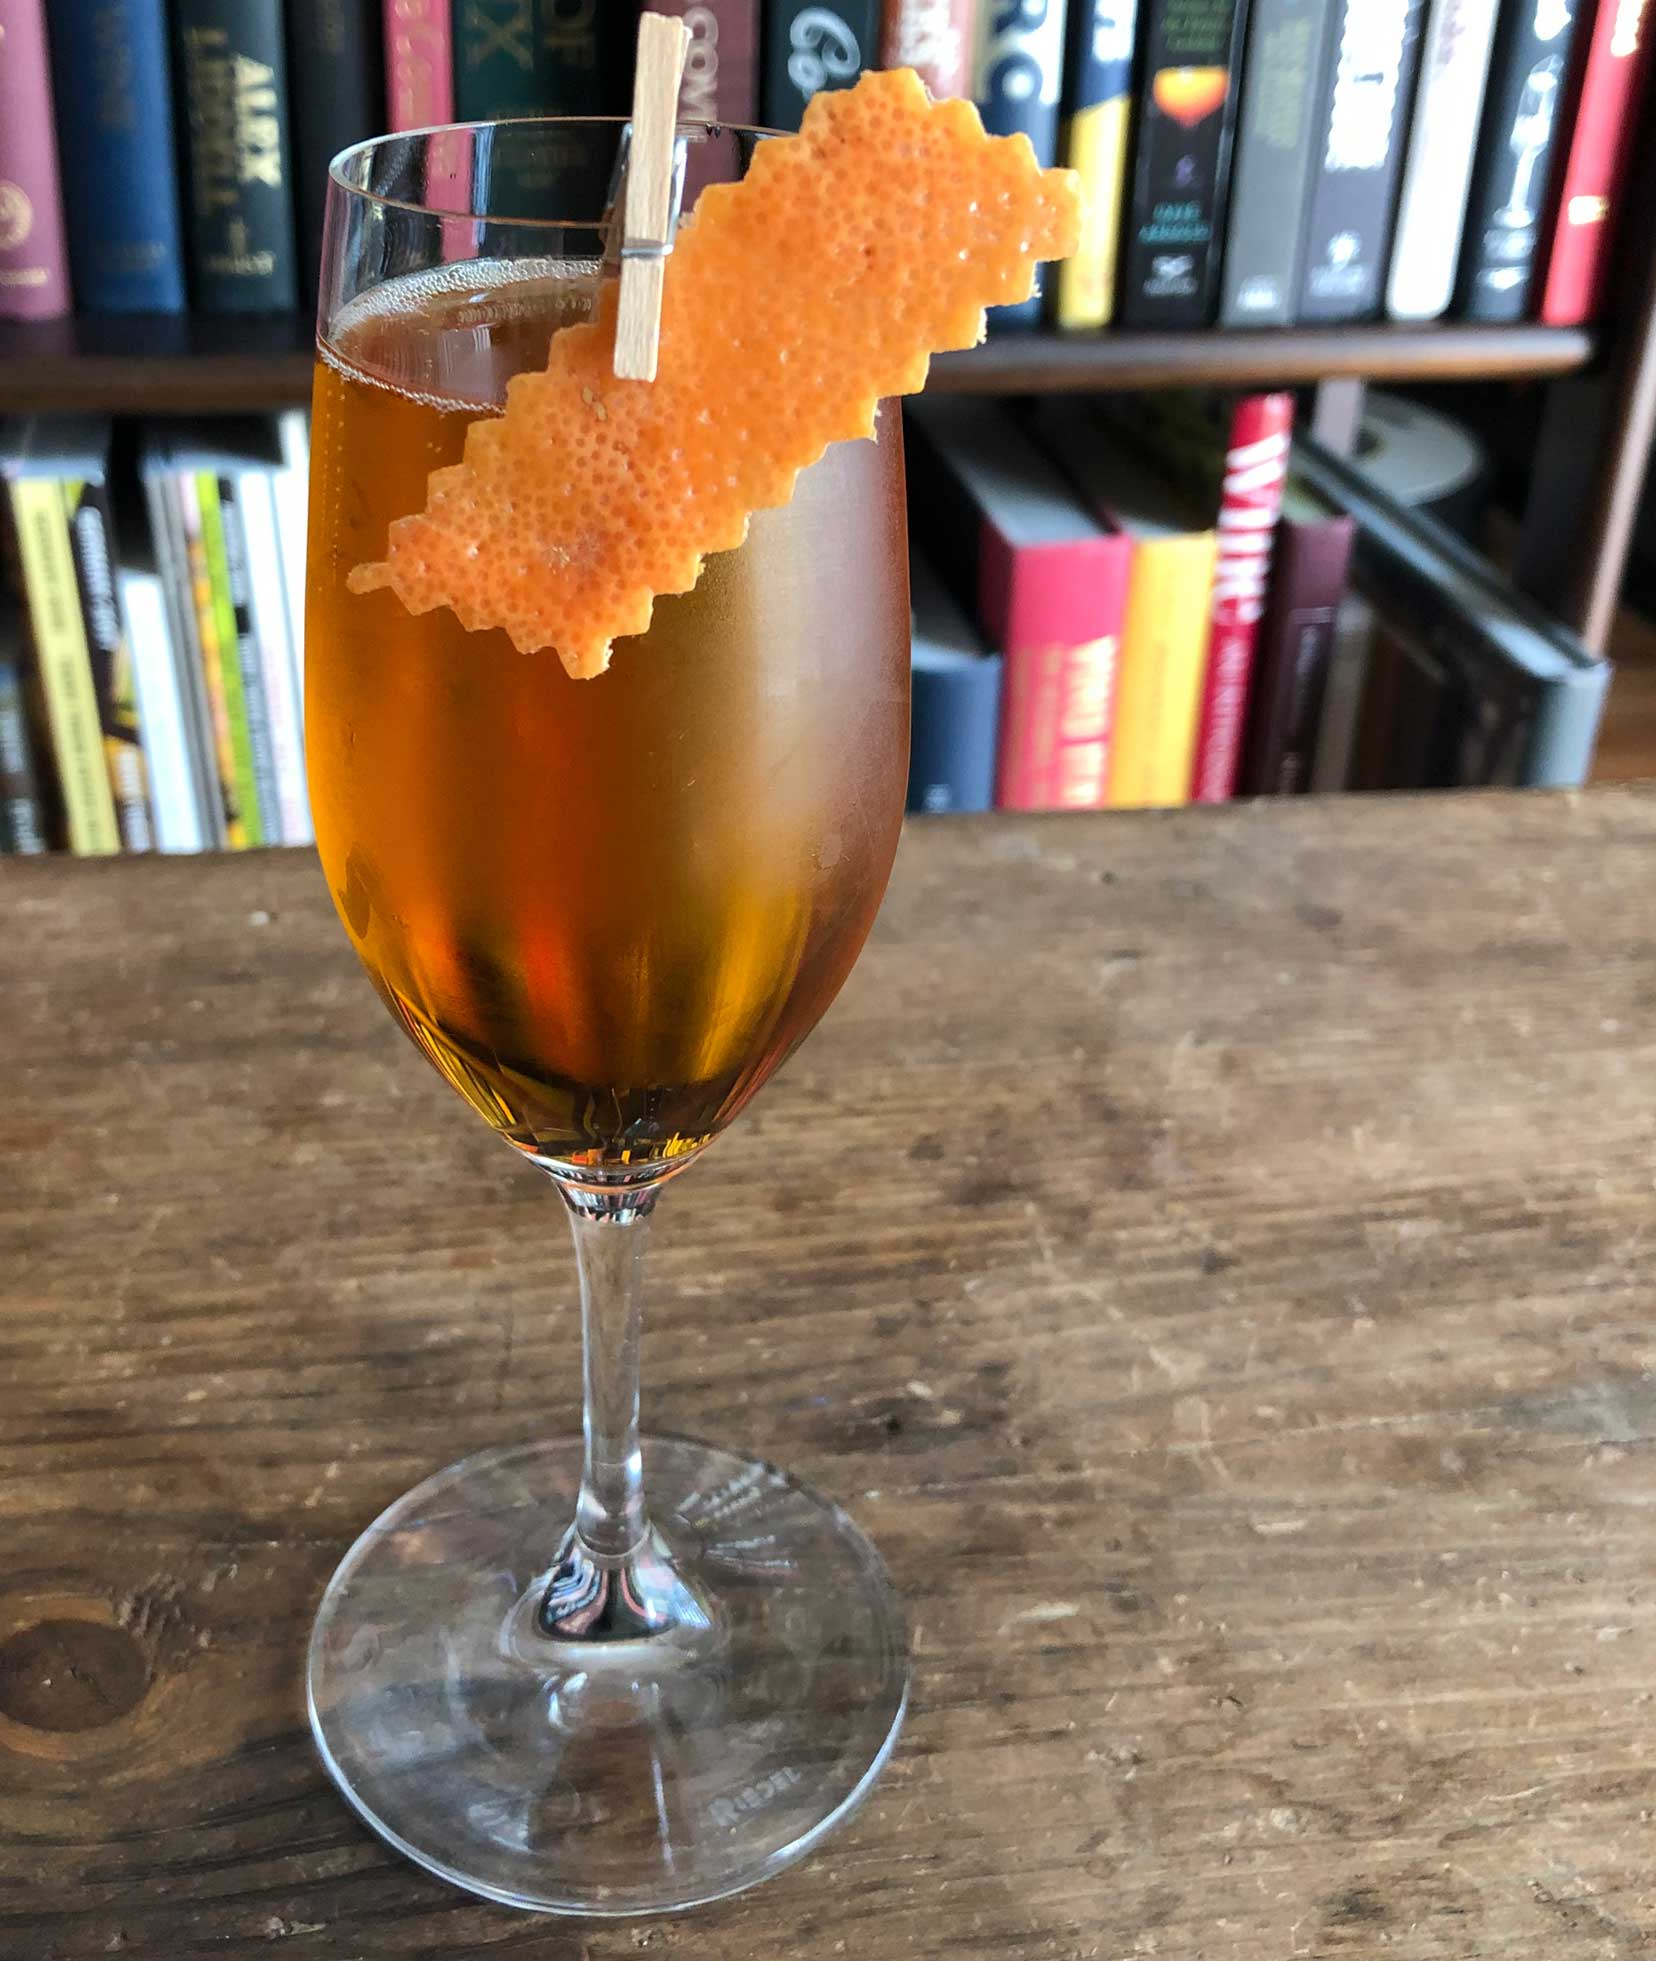 An example of the Champagne Supernova, the mixed drink (cocktail) featuring Cocchi Asti DOCG or sparkling wine, Rothman & Winter Orchard Apricot Liqueur, and Elisir Novasalus; photo by Lee Edwards